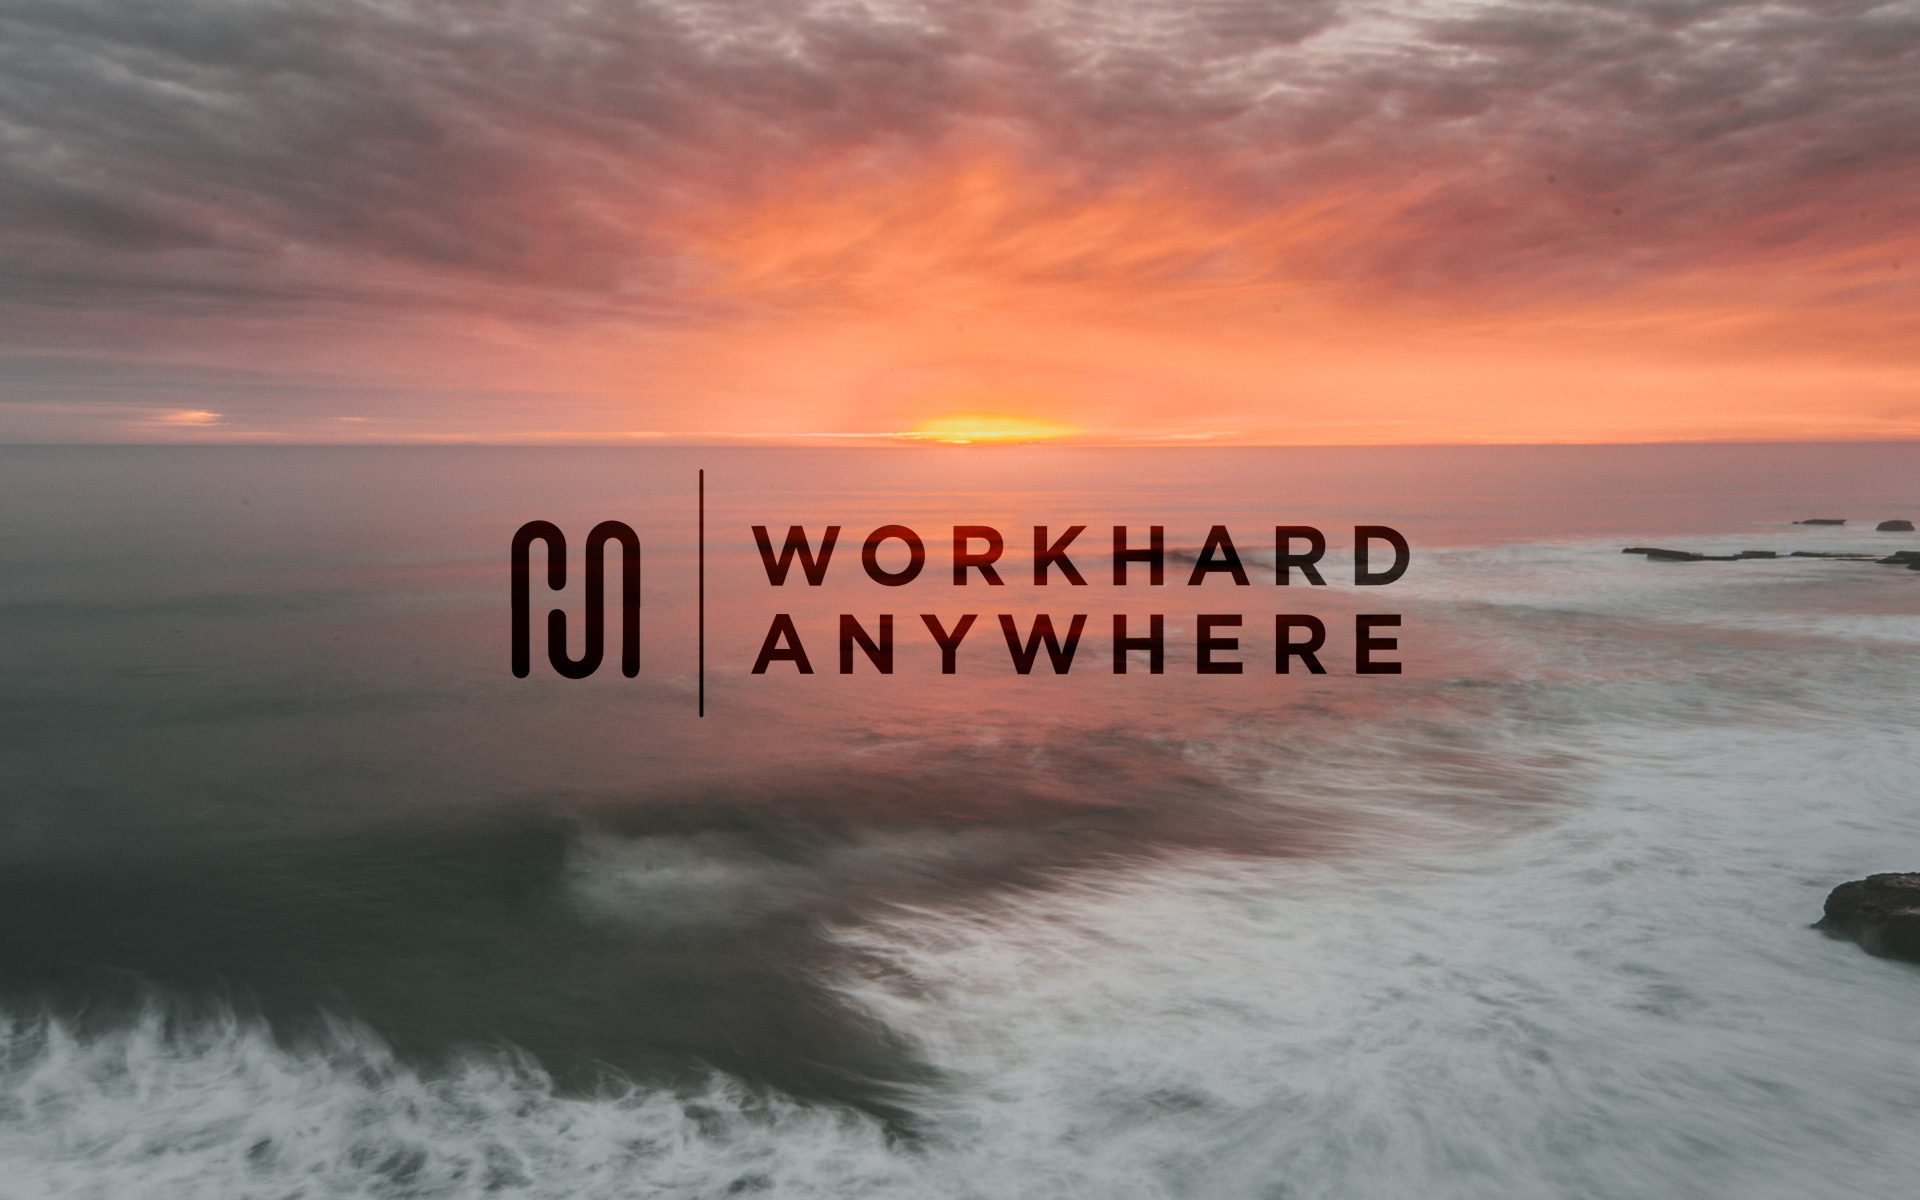 Work Hard Anywhere Limited Edition Wallpaper 1 Of Work